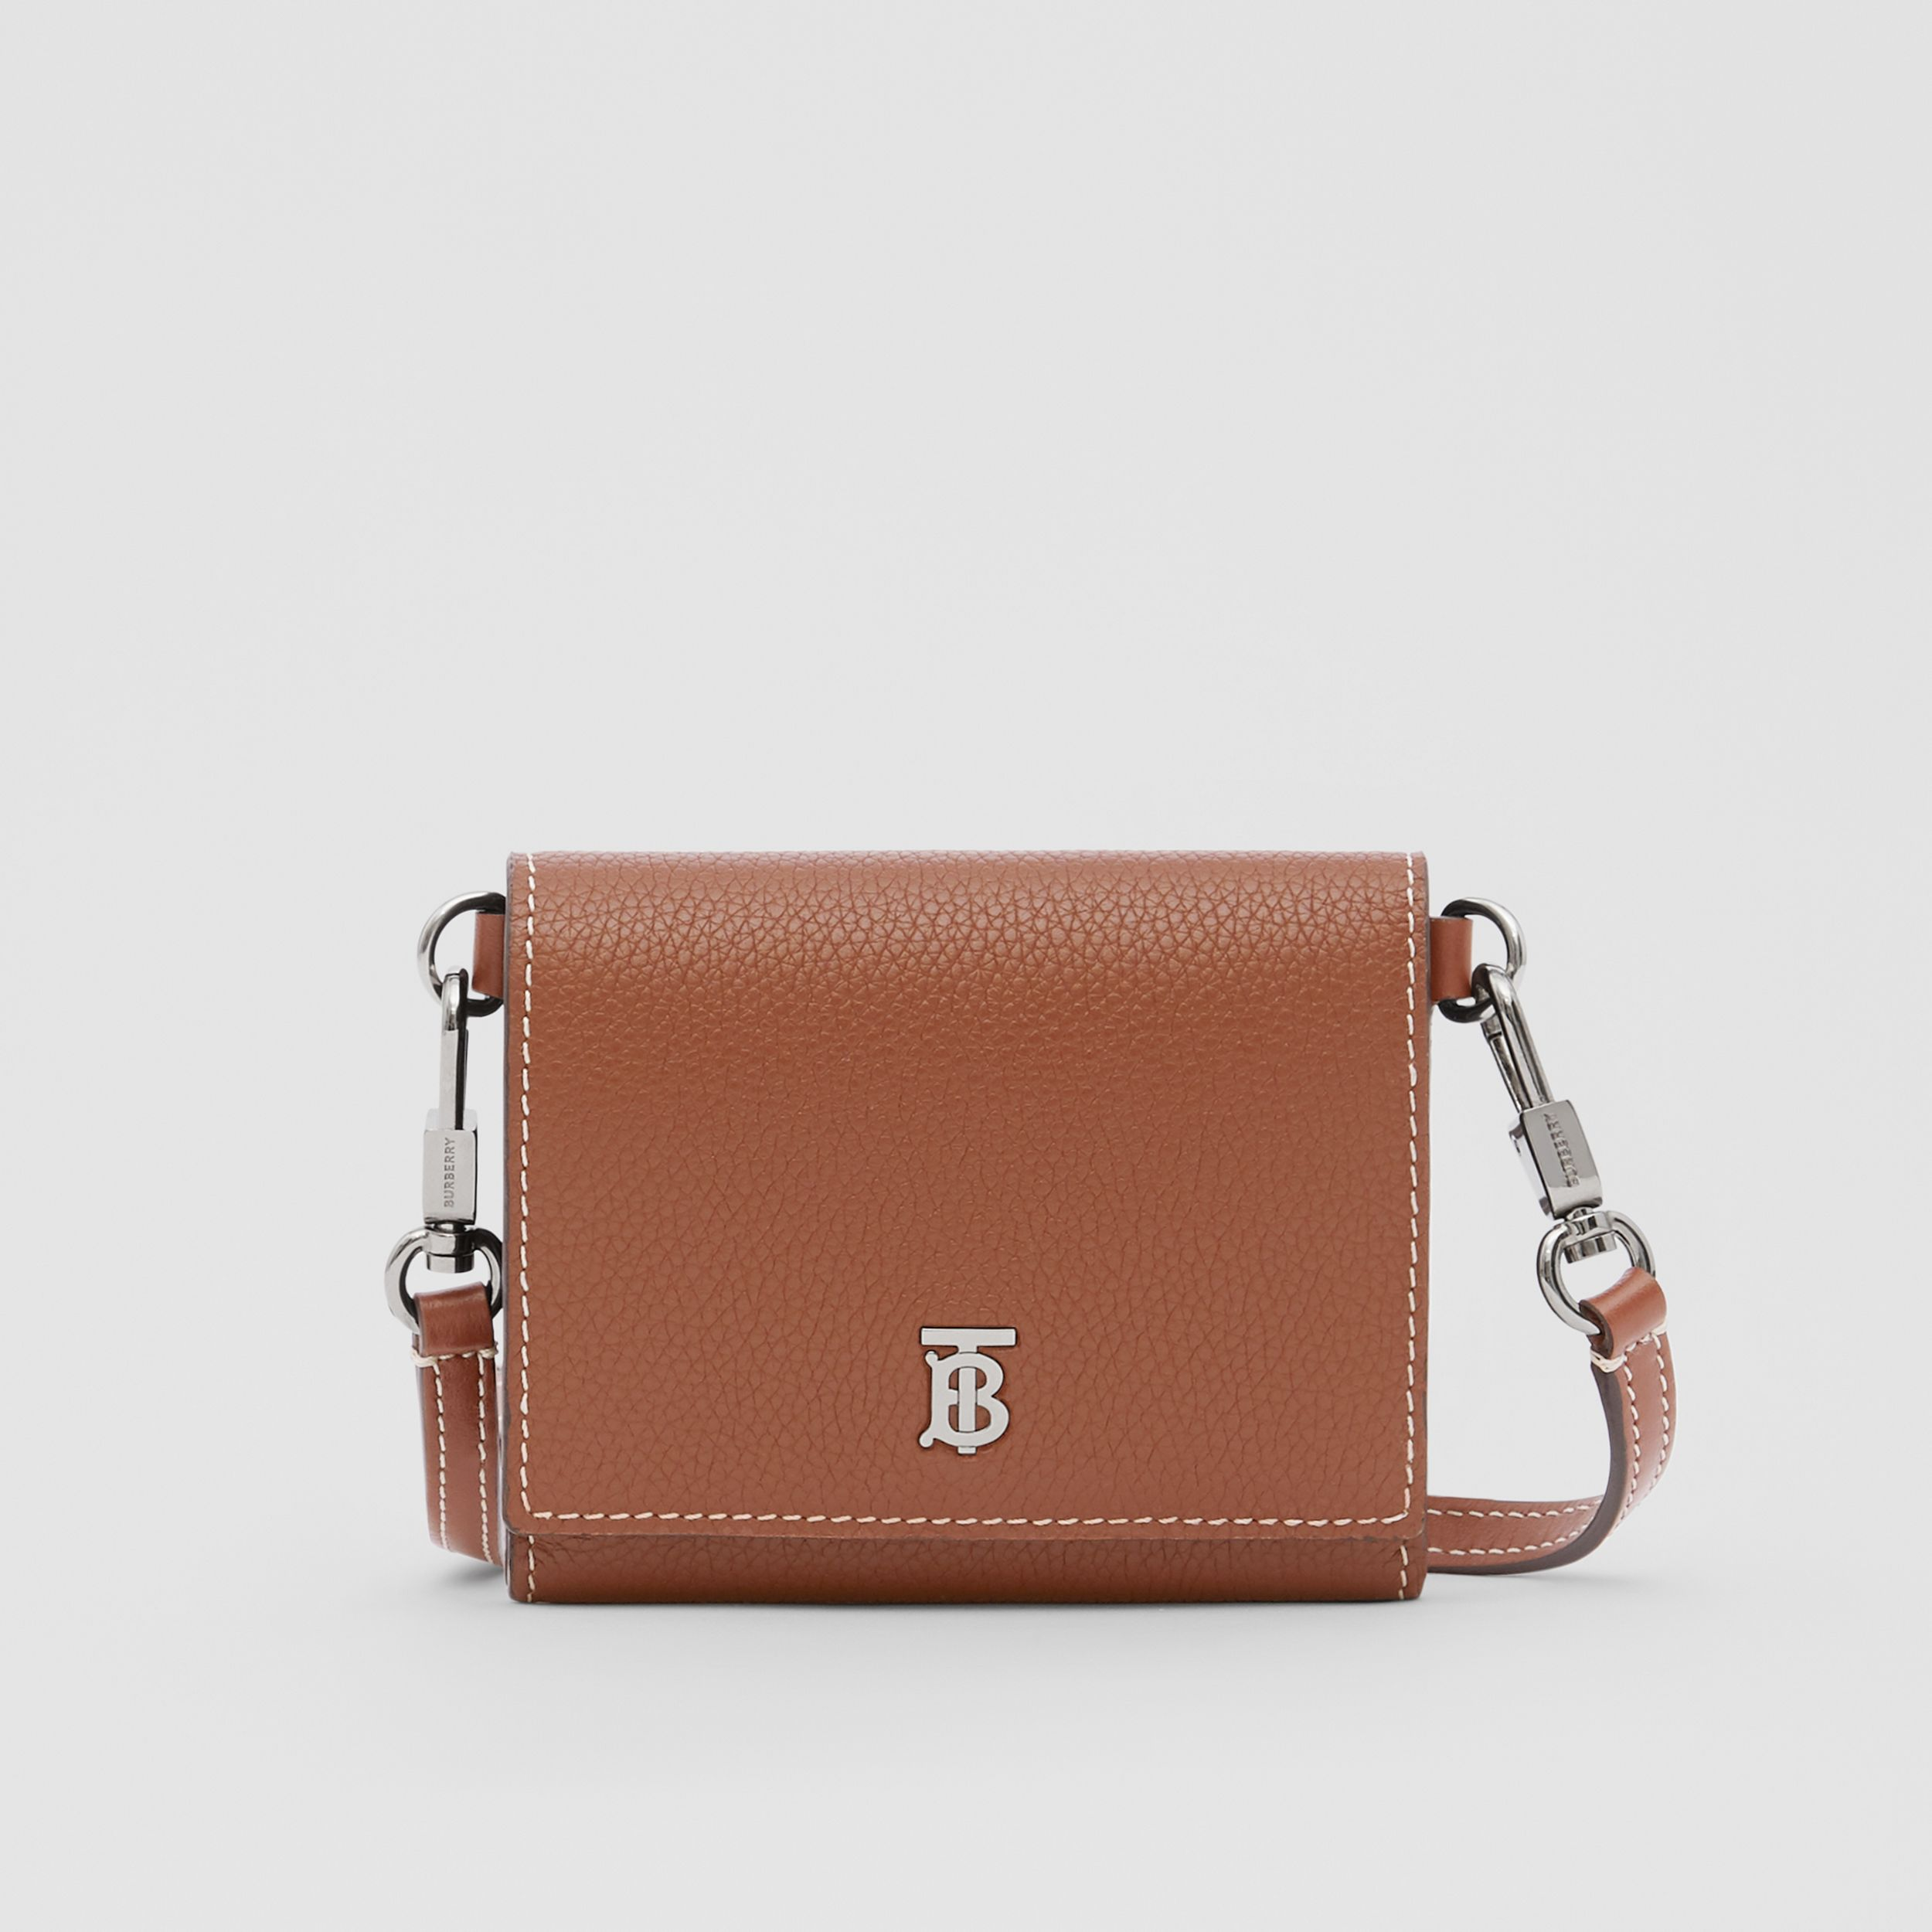 Small Grainy Leather Wallet with Detachable Strap in Tan - Men | Burberry - 1